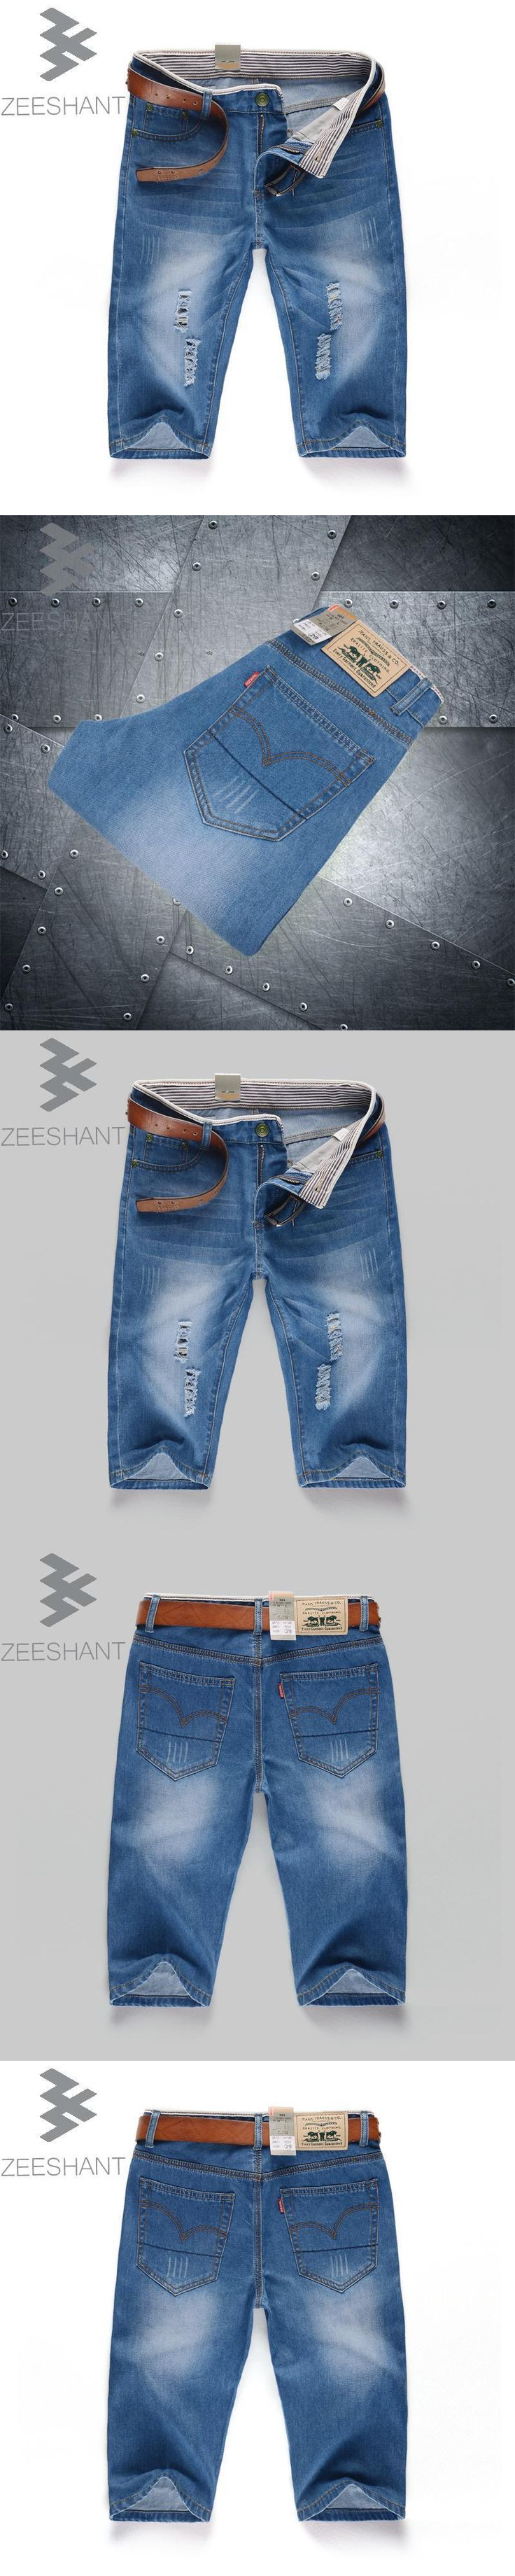 ZEESHANT Plus Size 40 Shorts Men Fashion Pocket Ripped Jeans Vintage Trousers Male Hole Denim Short Pants in Men's Jeans